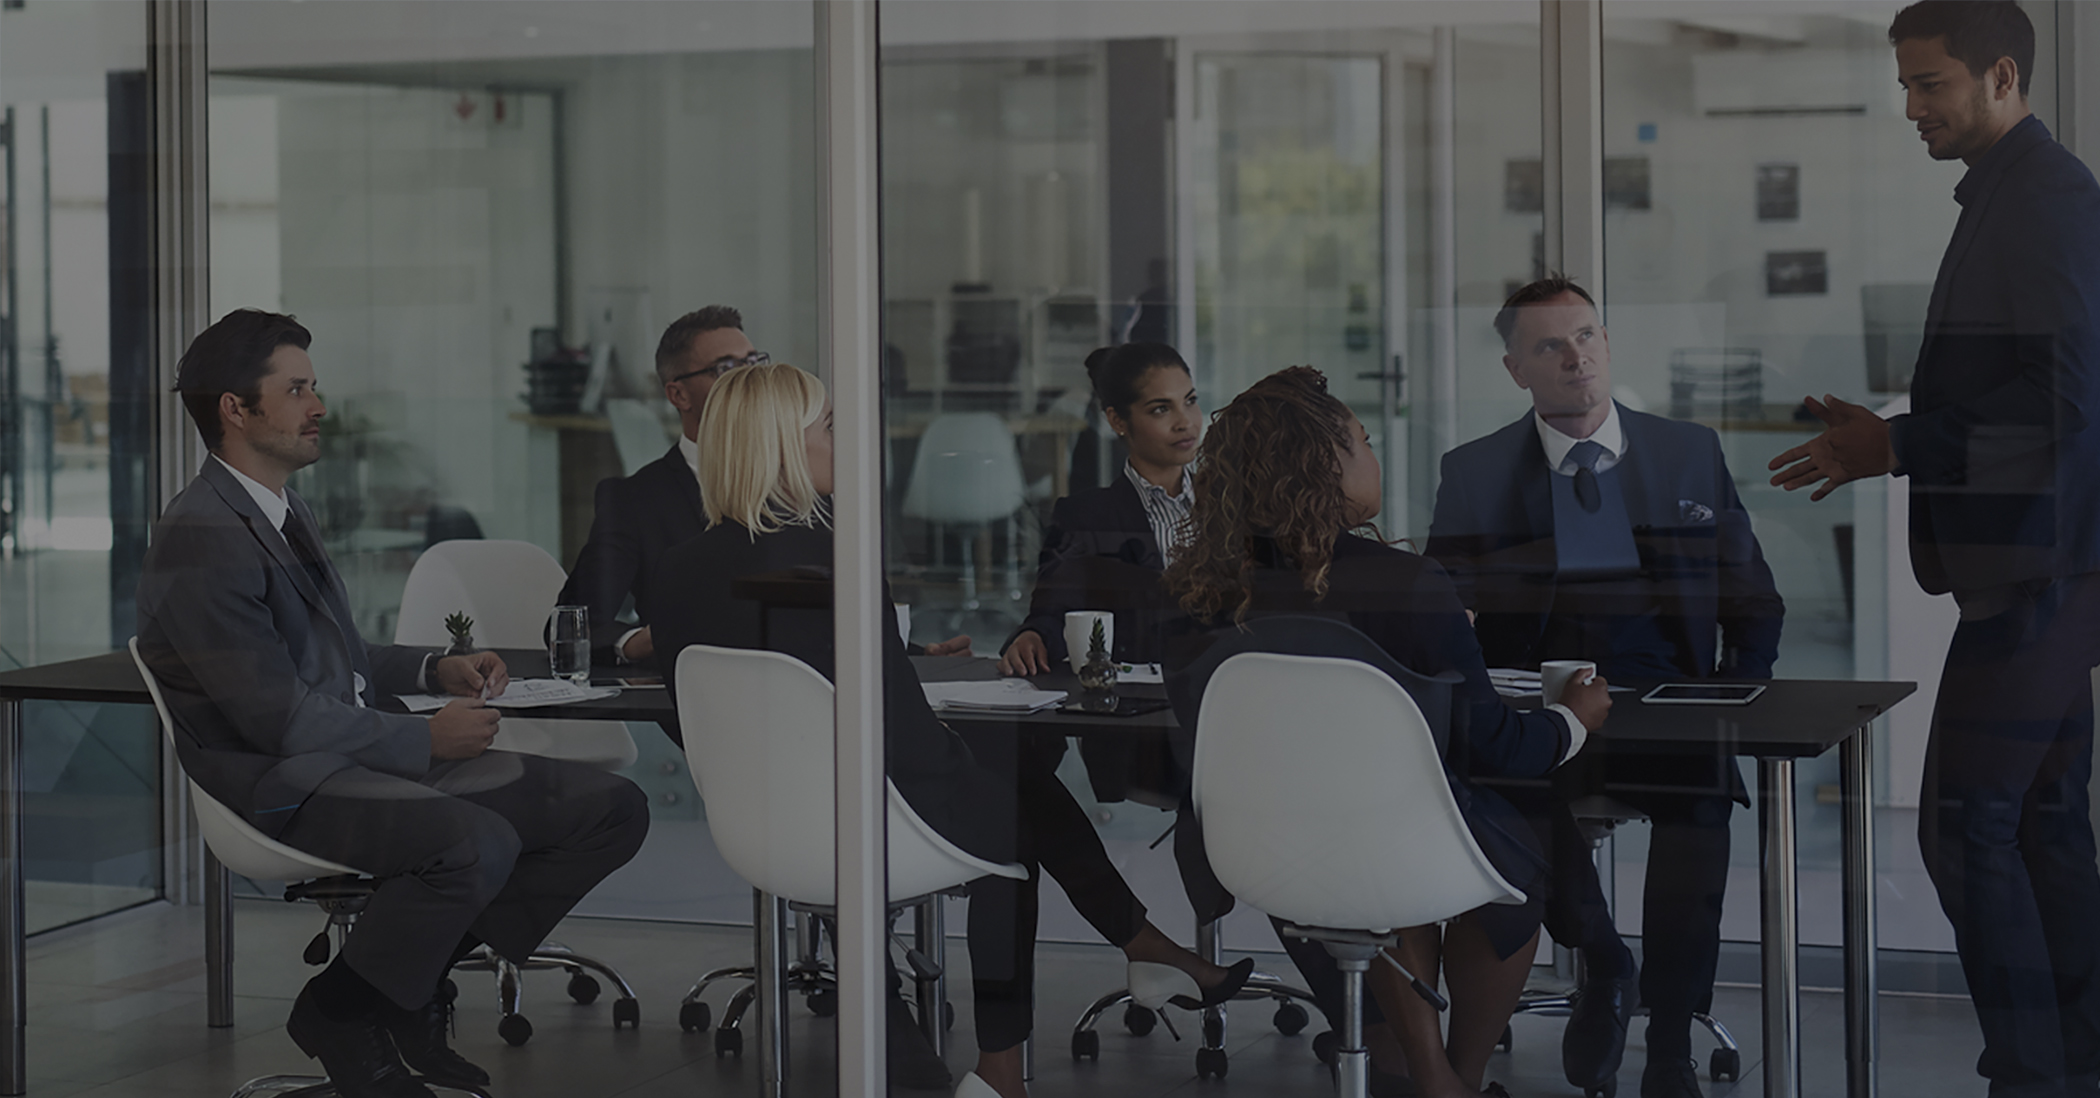 Picture of Perficient employees in a conference room